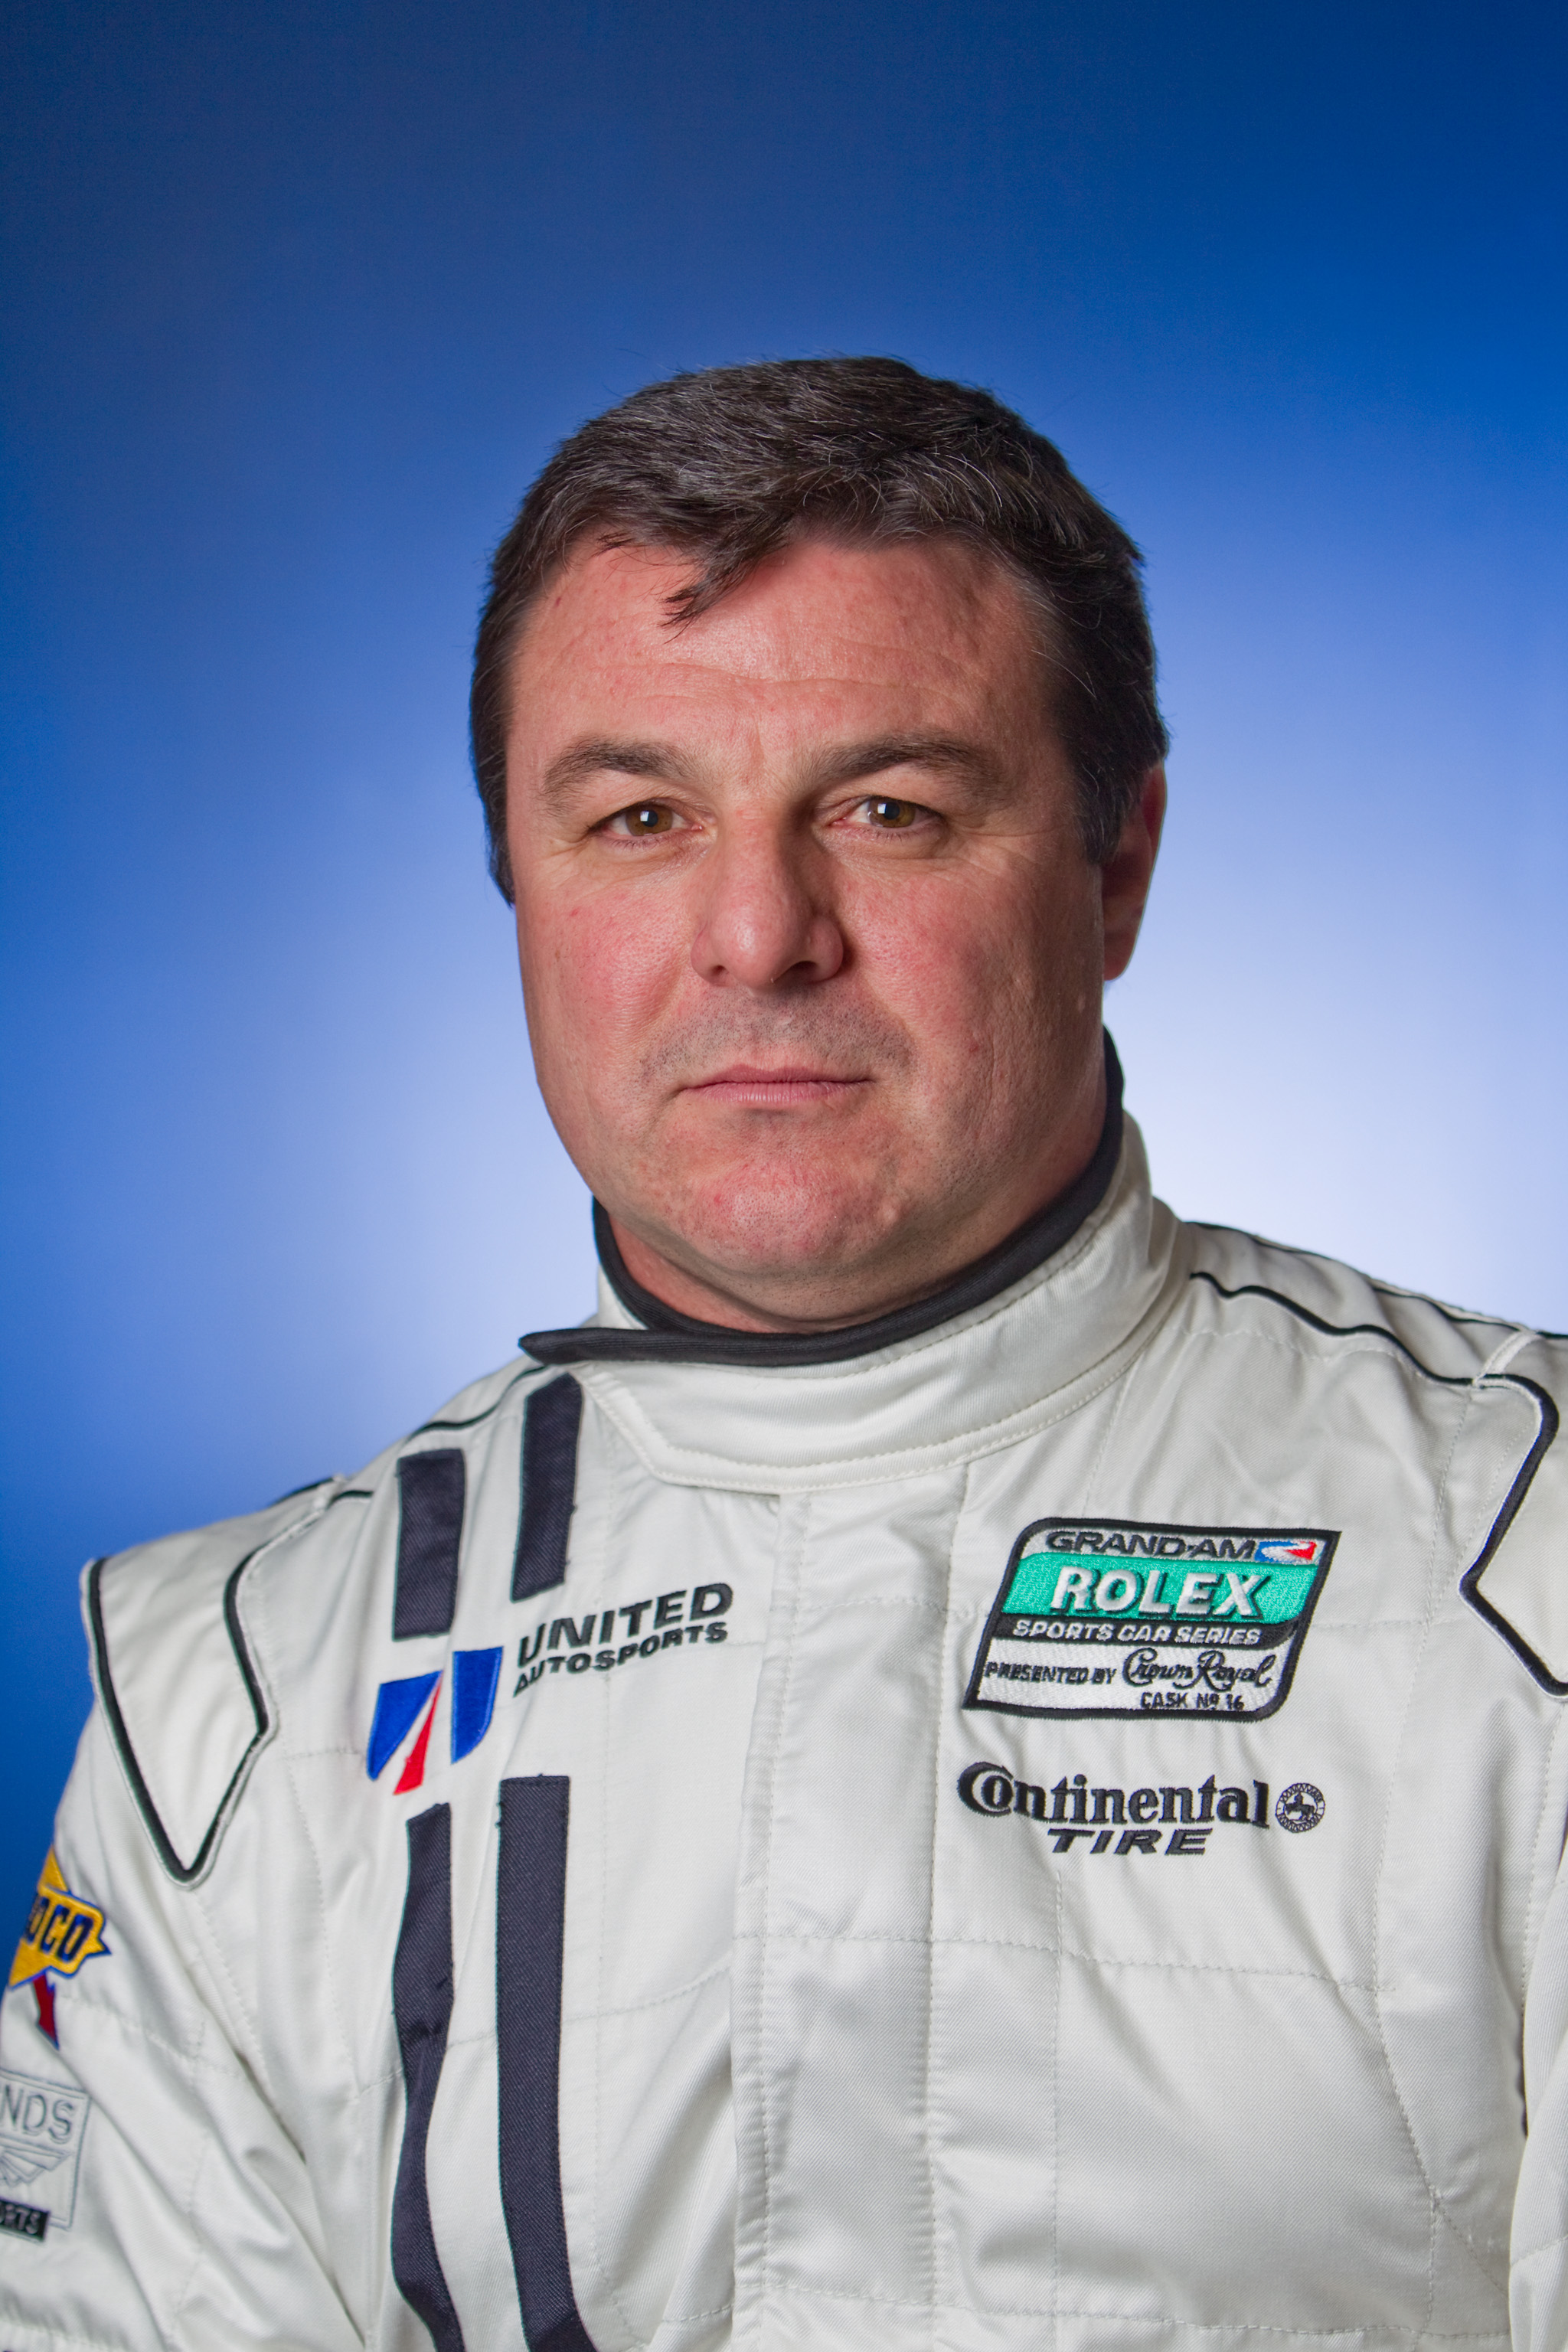 The 52-year old son of father (?) and mother(?) Mark Blundell in 2018 photo. Mark Blundell earned a  million dollar salary - leaving the net worth at 11 million in 2018